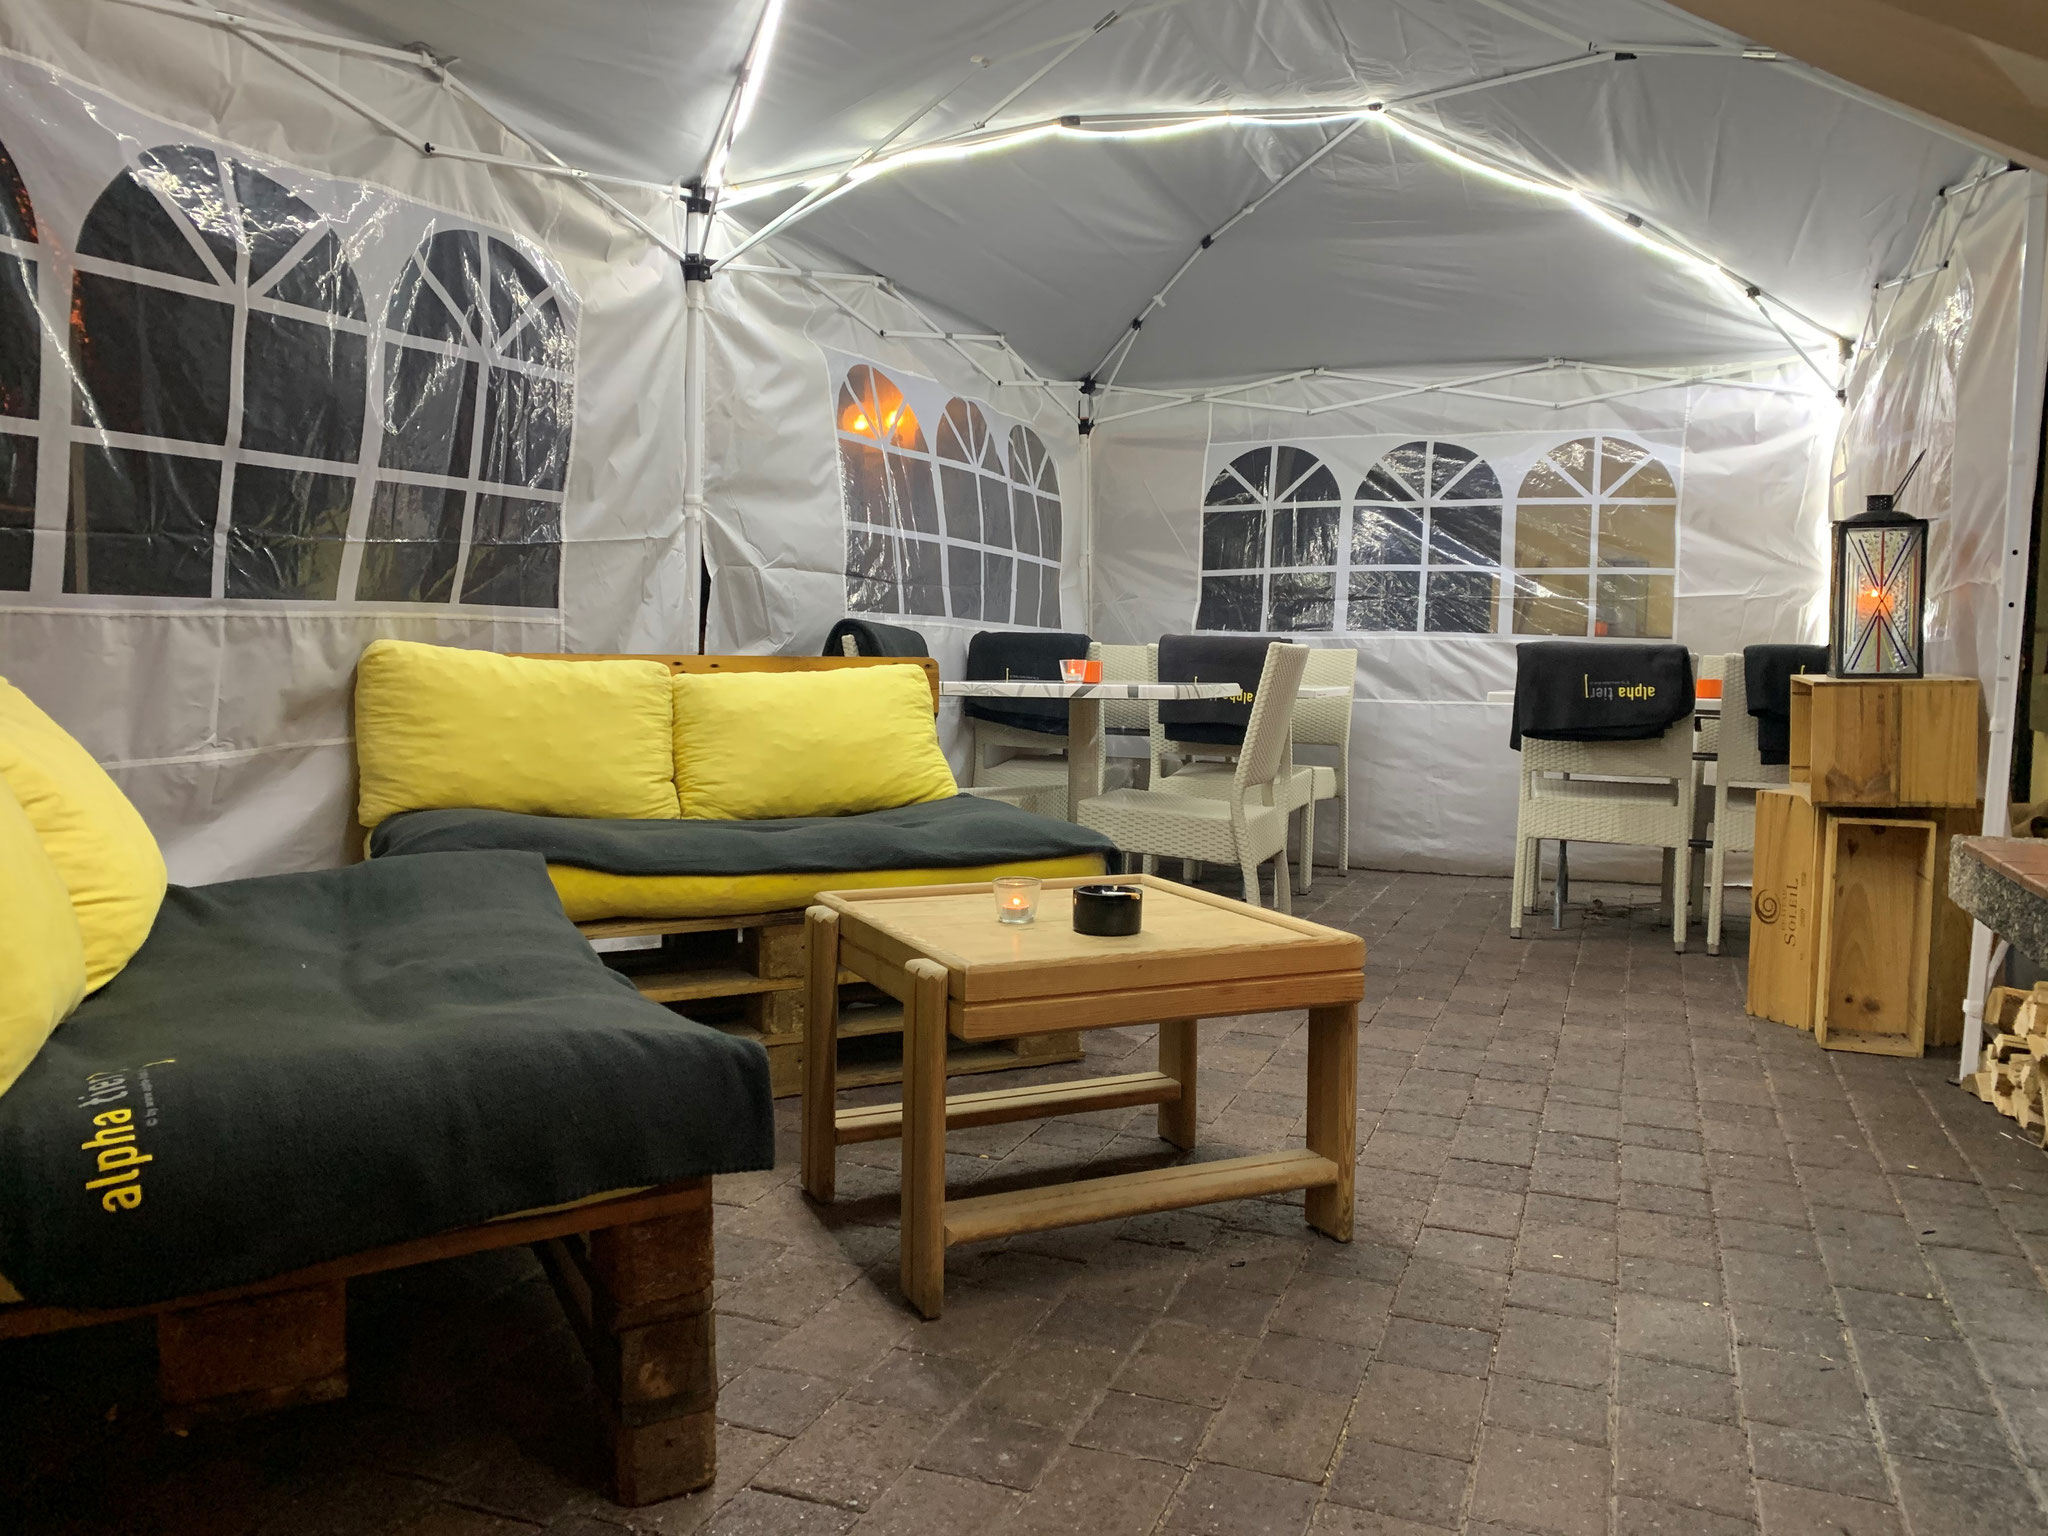 wonderful in this tent